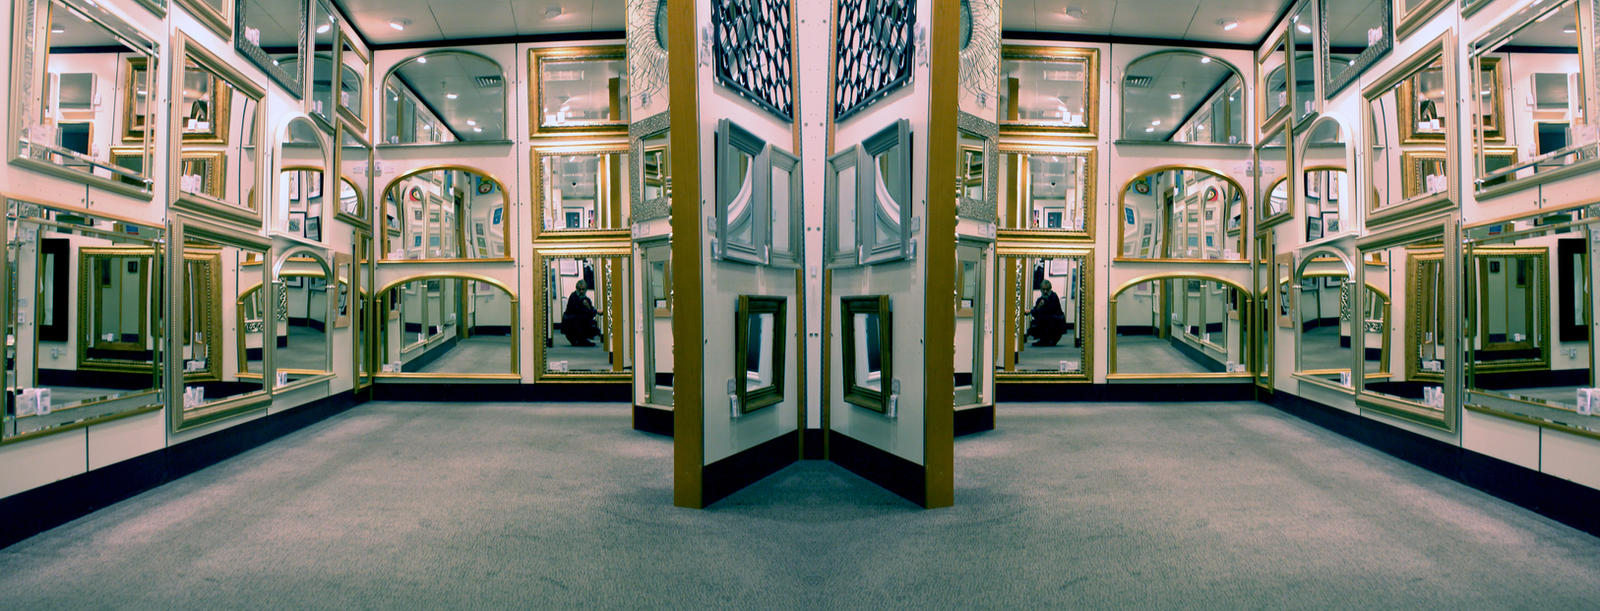 Room Full Of Mirrors, Extended Version by aegiandyad on ... - photo#48